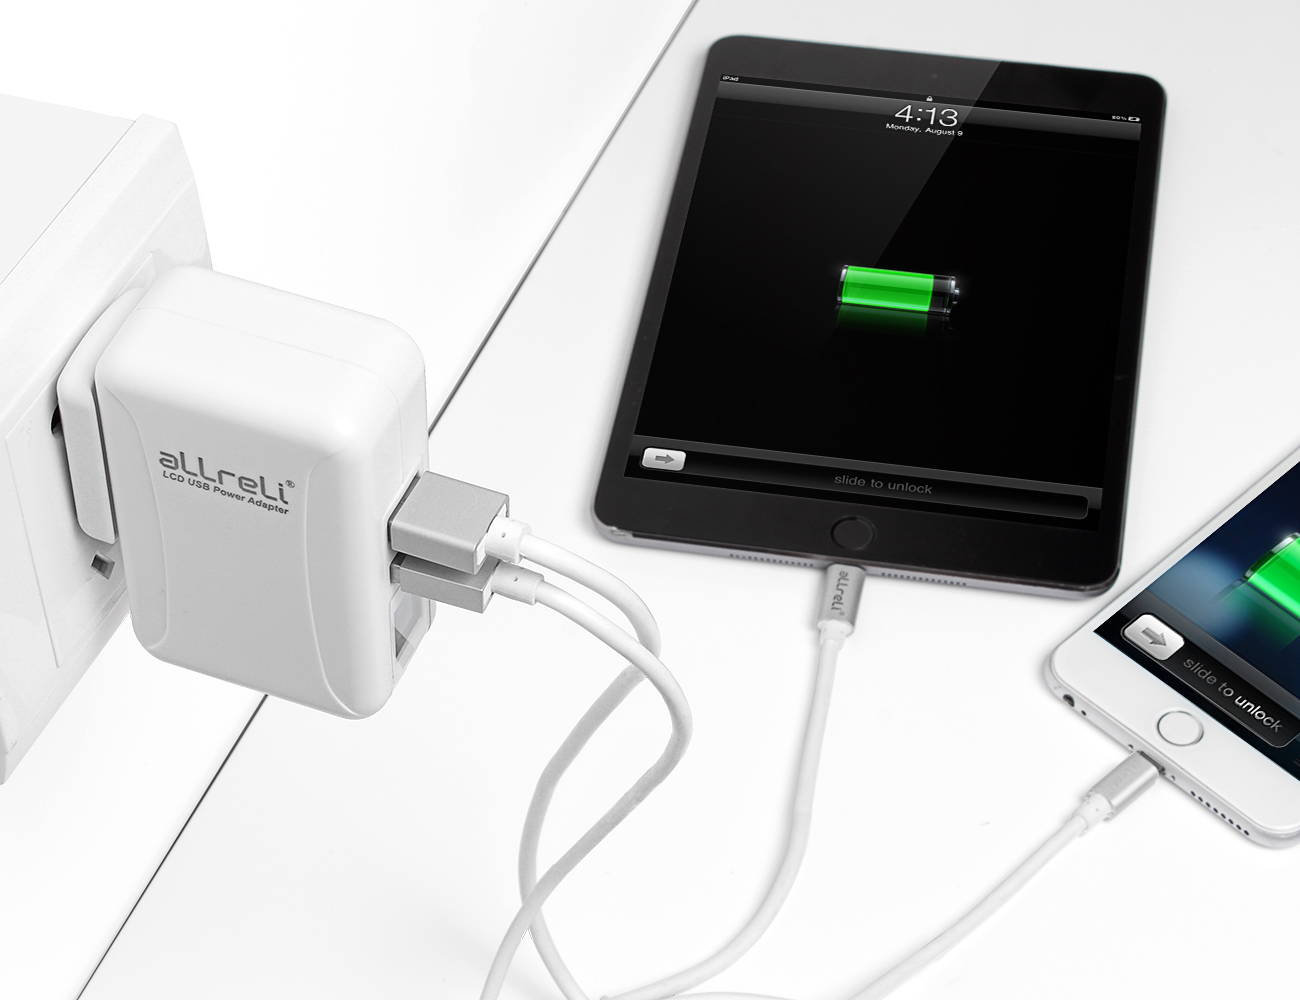 ALLreLi+24W+%2F+4.8A+Dual+USB+Travel+Charger+Kit+With+LCD+Display+%26amp%3B+Smart+IC